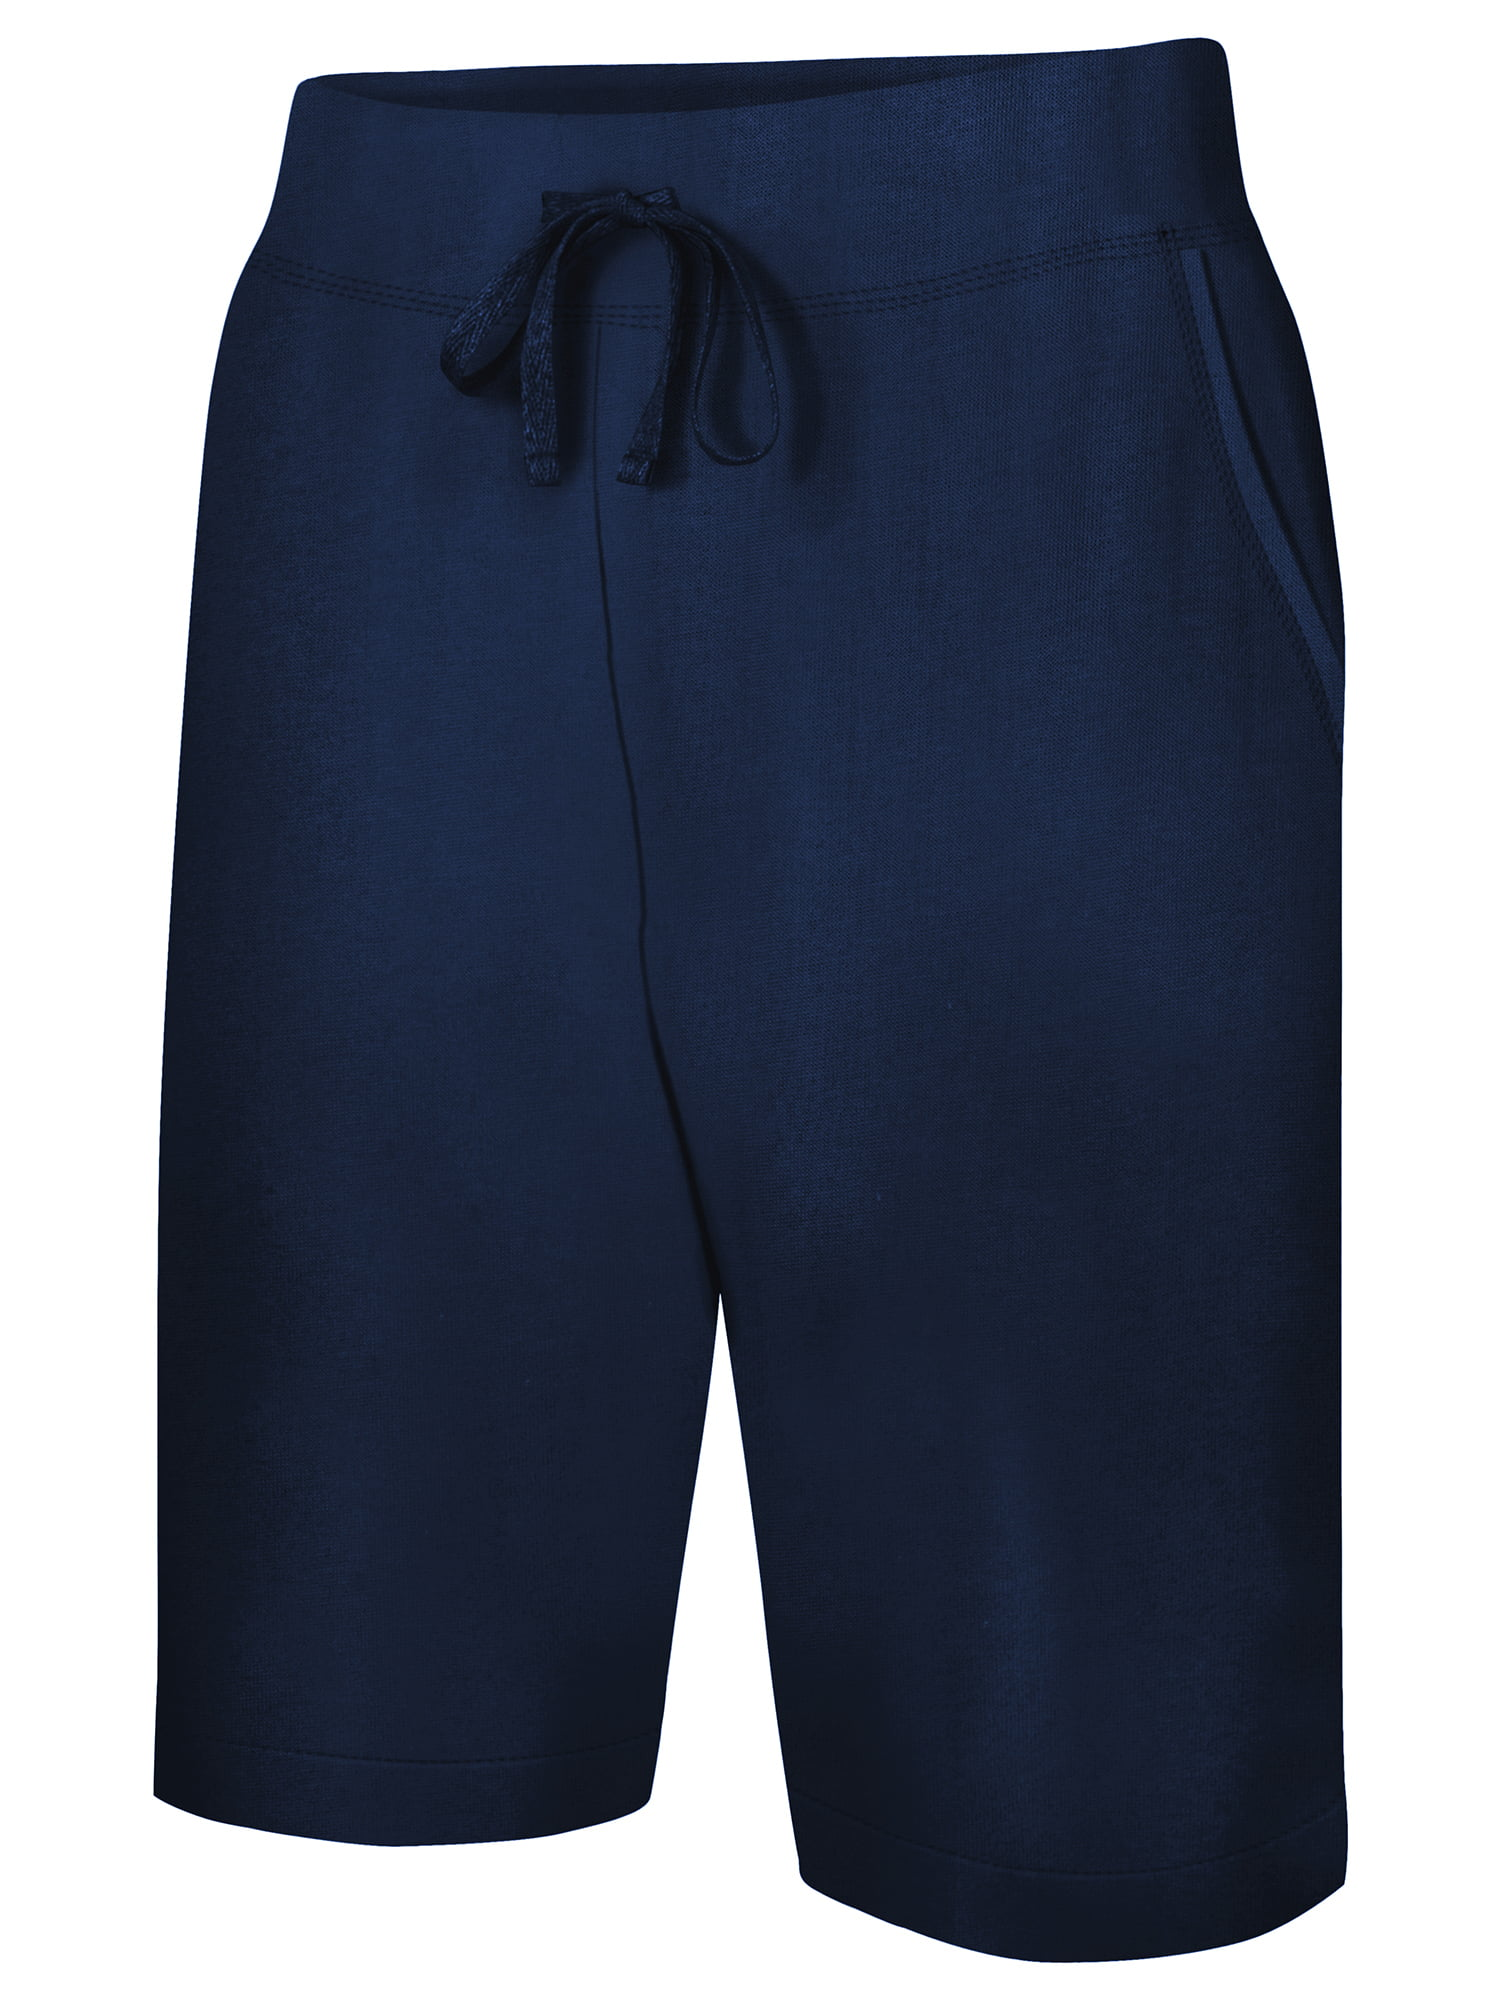 1f70372a0c Women's 11 French Terry Bermuda Short with Pockets - Walmart.com